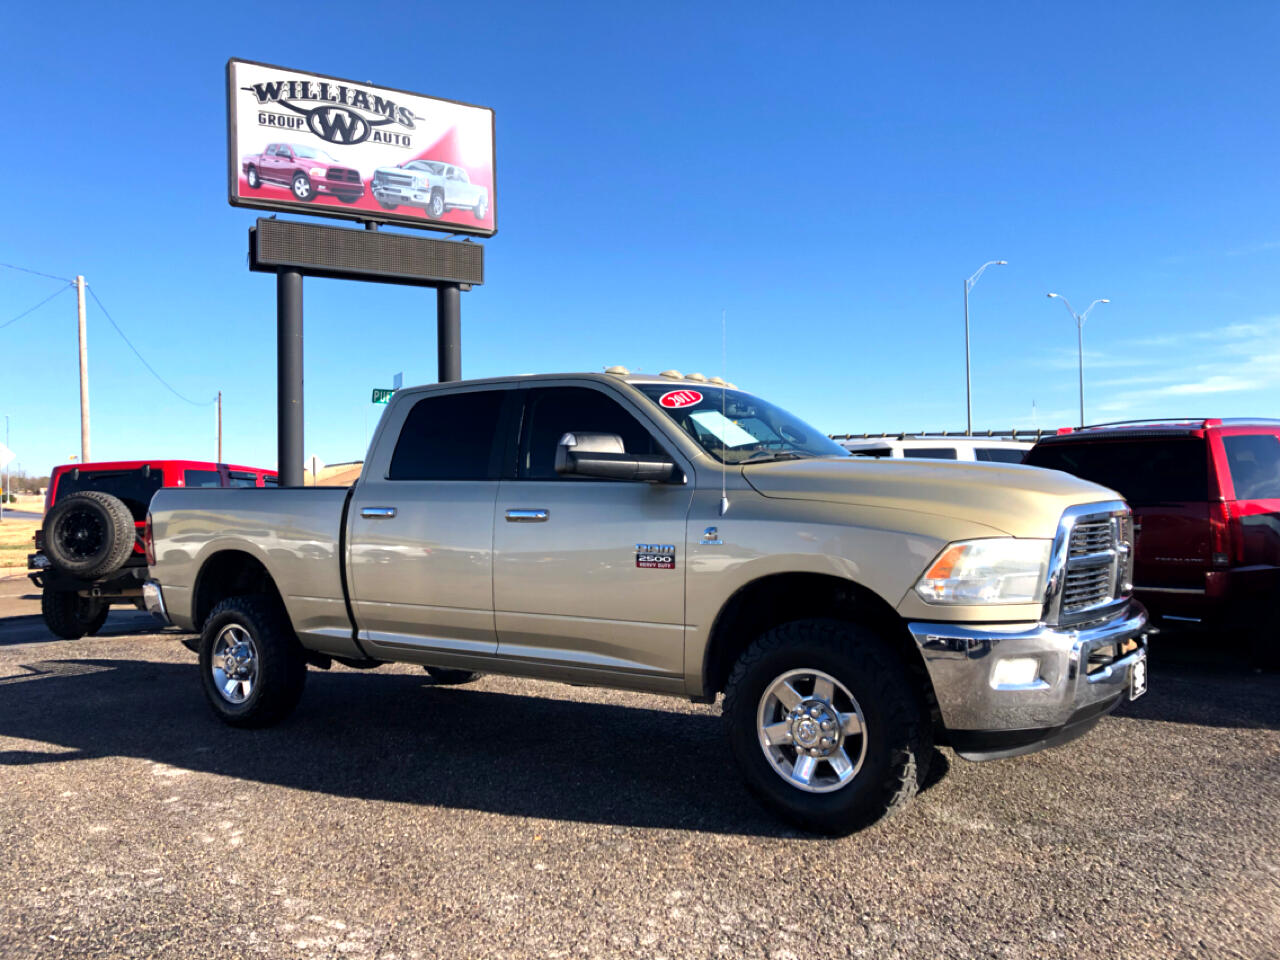 used 2011 ram 2500 crew cab slt 4x4 for sale in abilene tx 79605 williams group auto. Black Bedroom Furniture Sets. Home Design Ideas